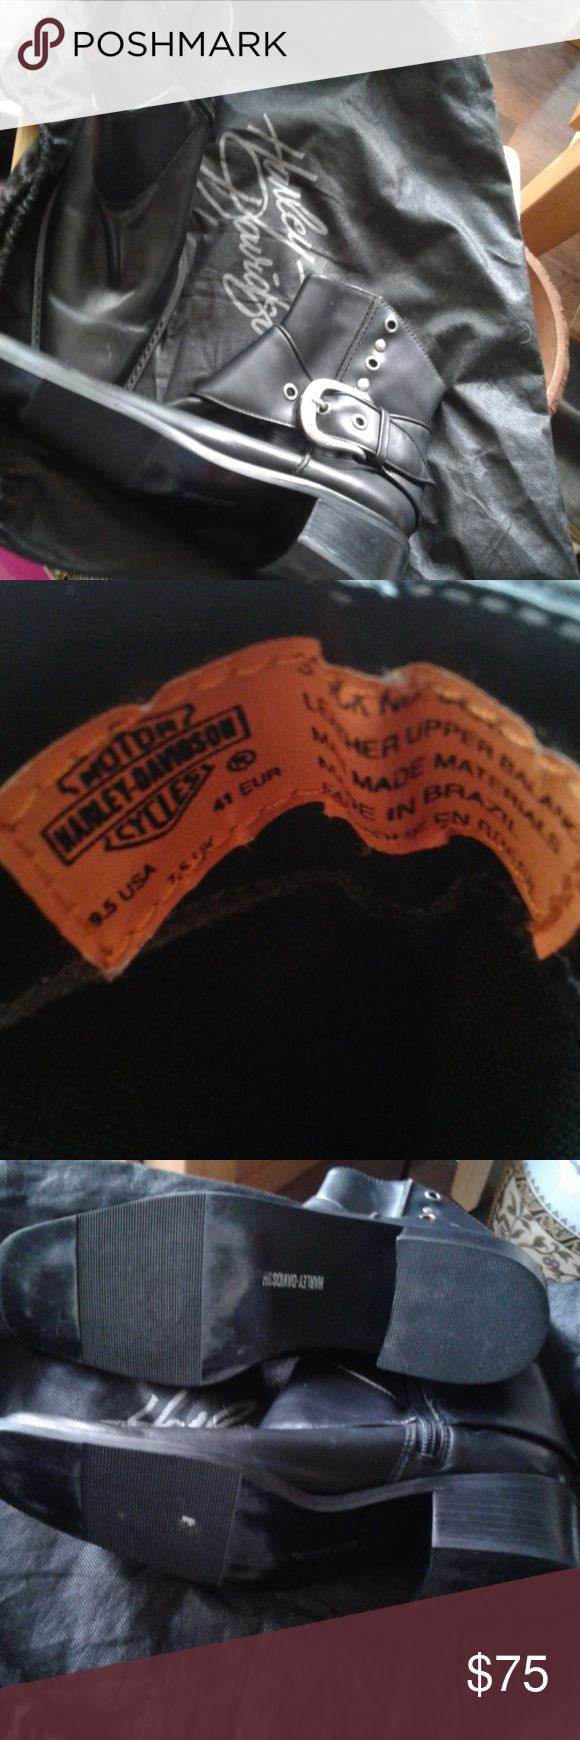 Harley Davidson men's boots Good pre-own condition Harley-Davidson Shoes Boots